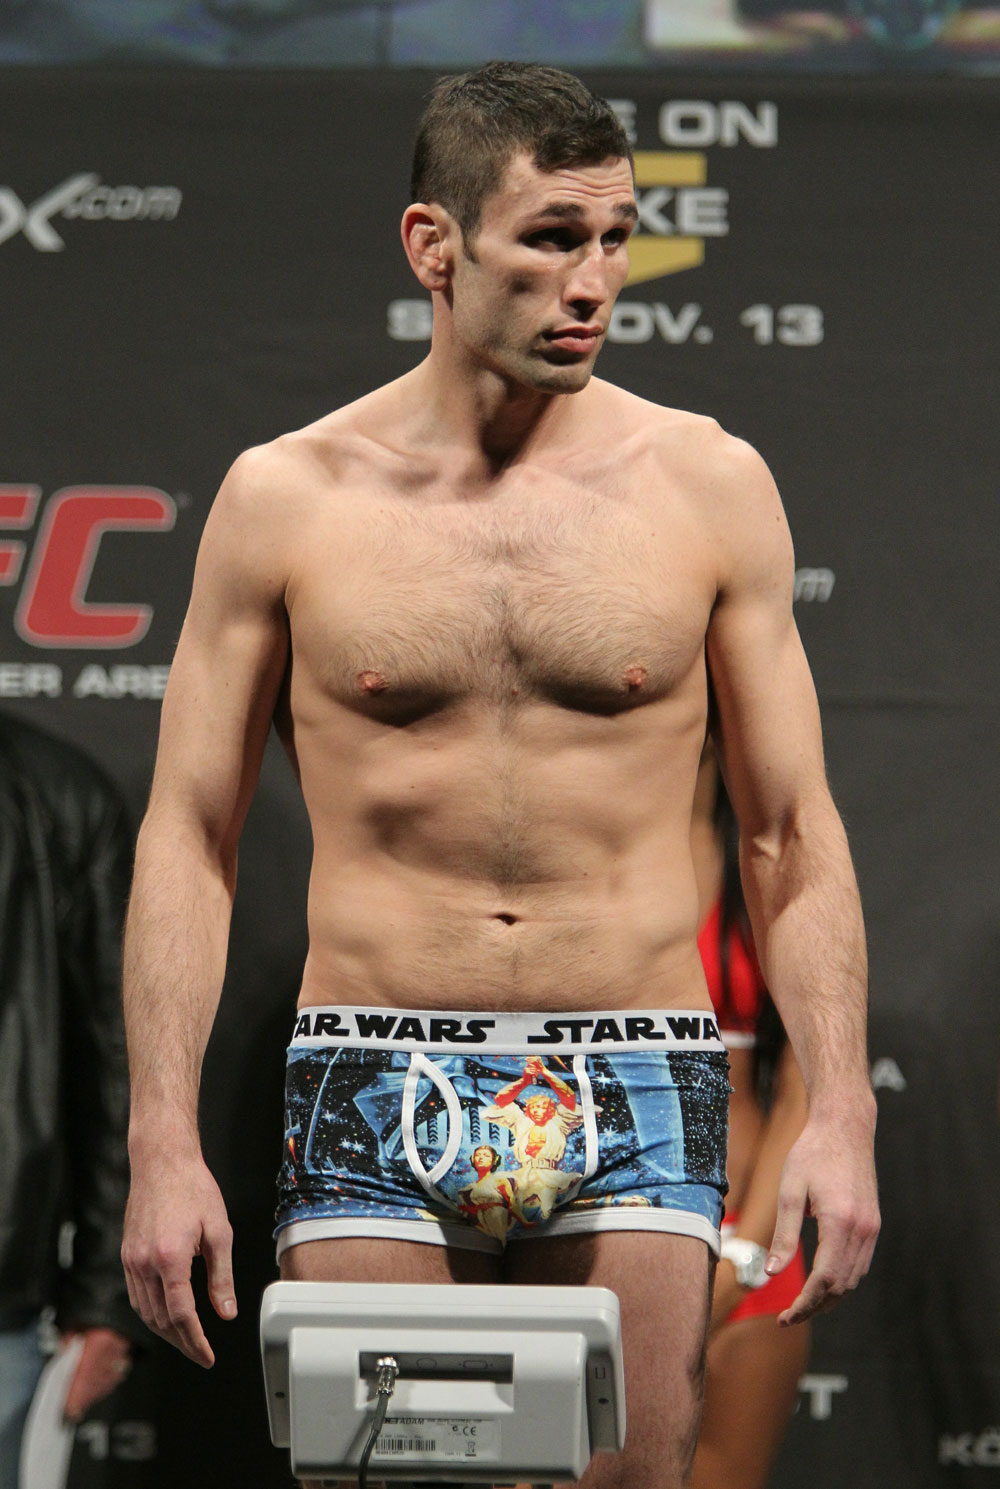 Amir Sadollah of United States weighs in at 170 lbs at the UFC 122 weigh-in at the Koenig Pilsener Arena on November 12,  2010 in Oberhausen, Germany.  (Photo by Josh Hedges/Zuffa LLC/Zuffa LLC via Getty Images)